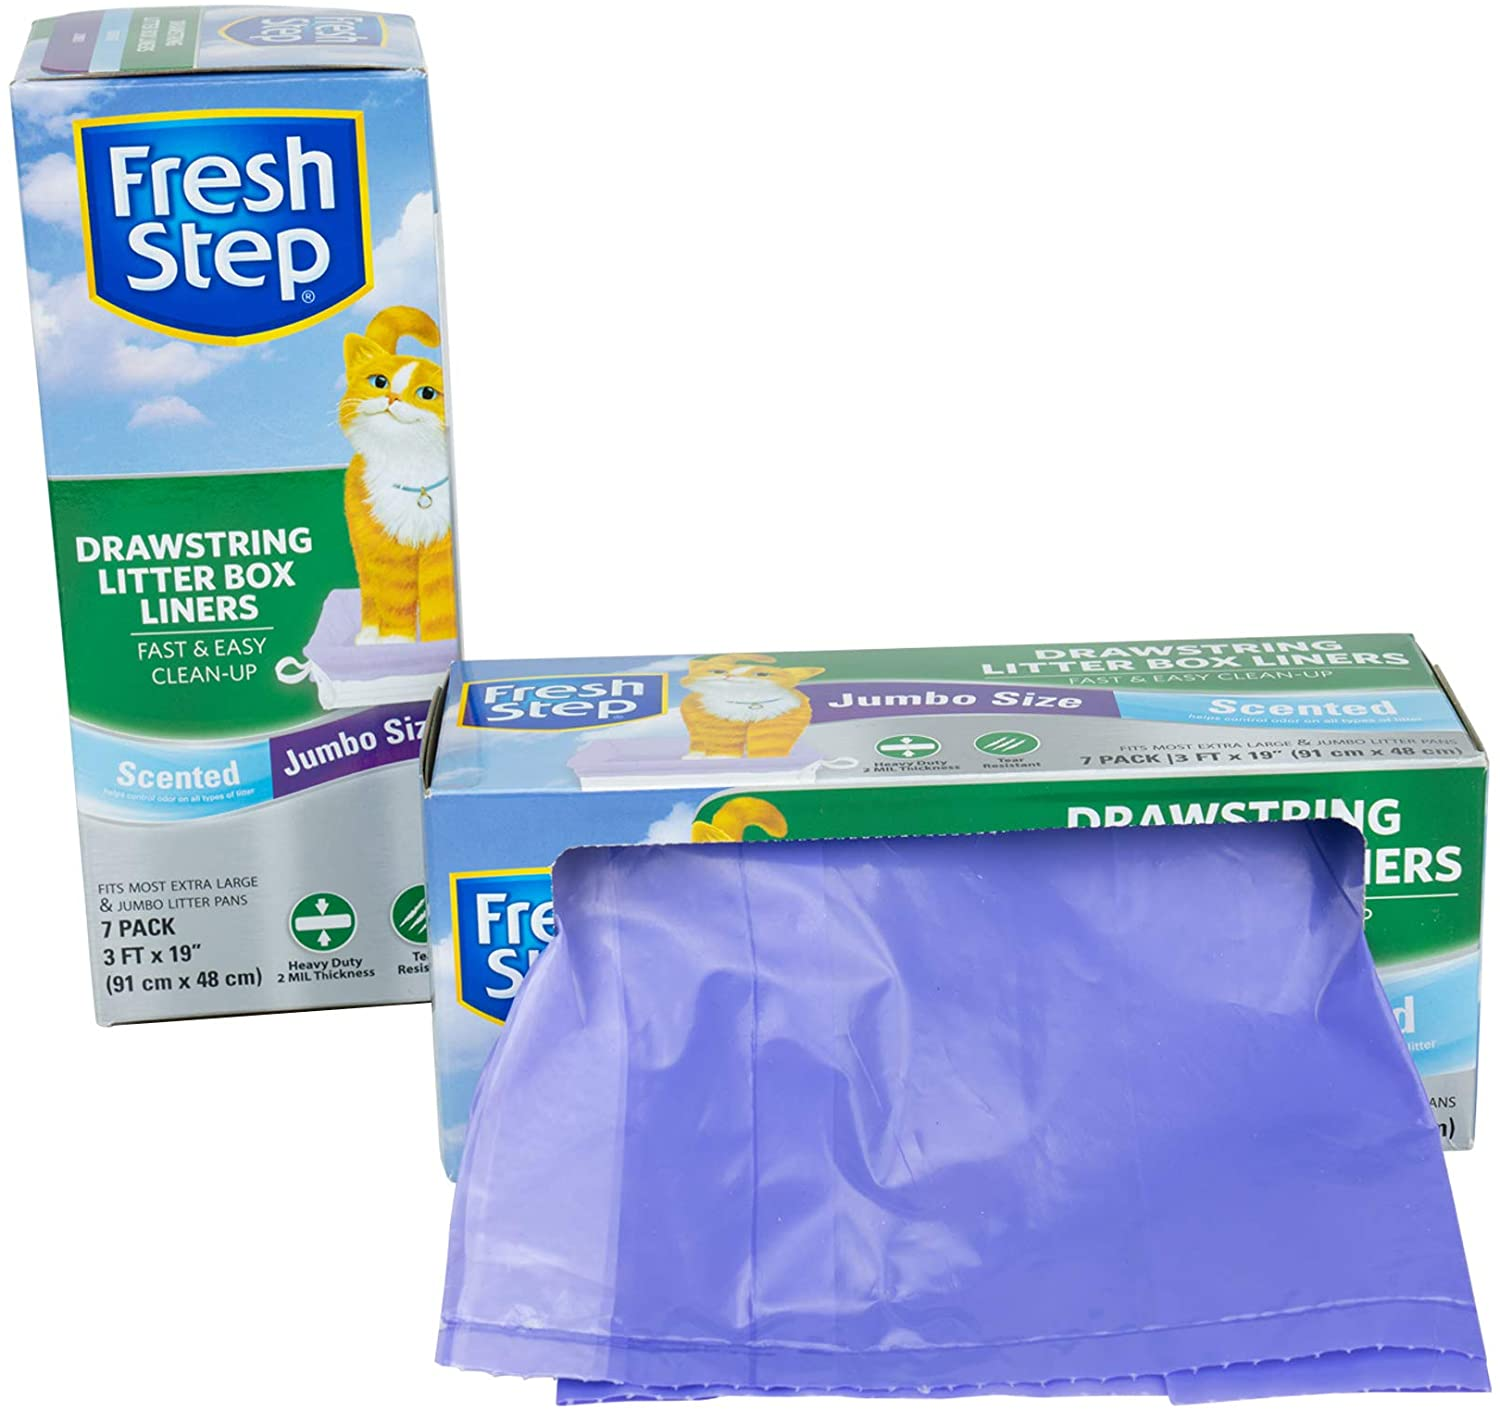 Fresh Step Drawstring Large Litter Box Liners for $5.48 Shipped! (Reg.Price $9.96)